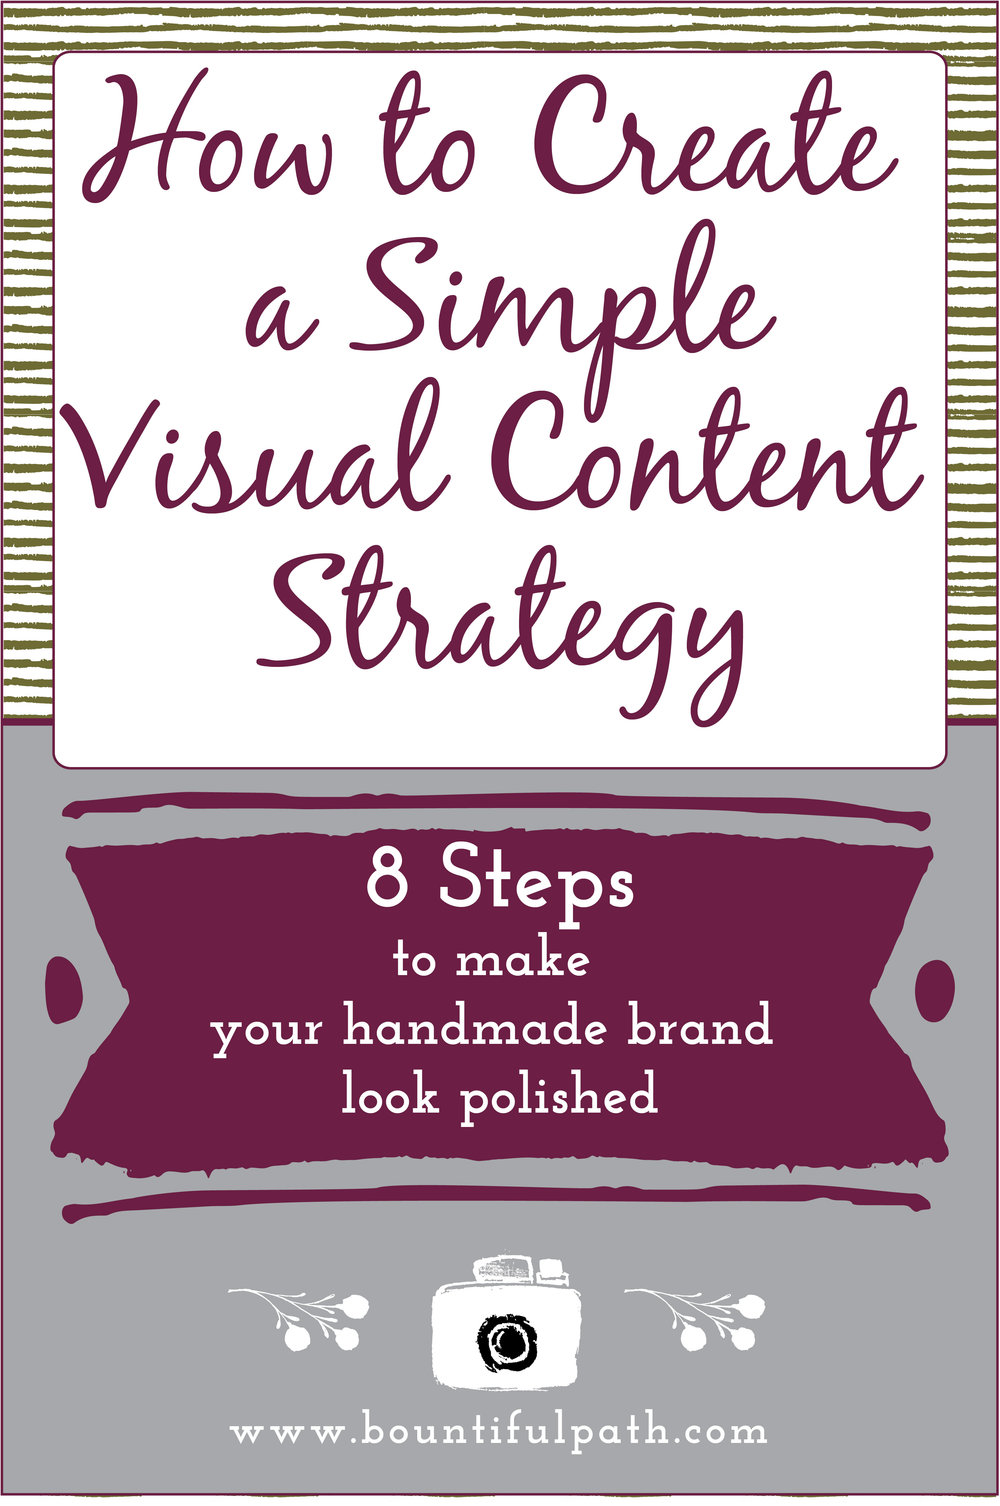 How to create a simple visual content strategy from Bountiful Path